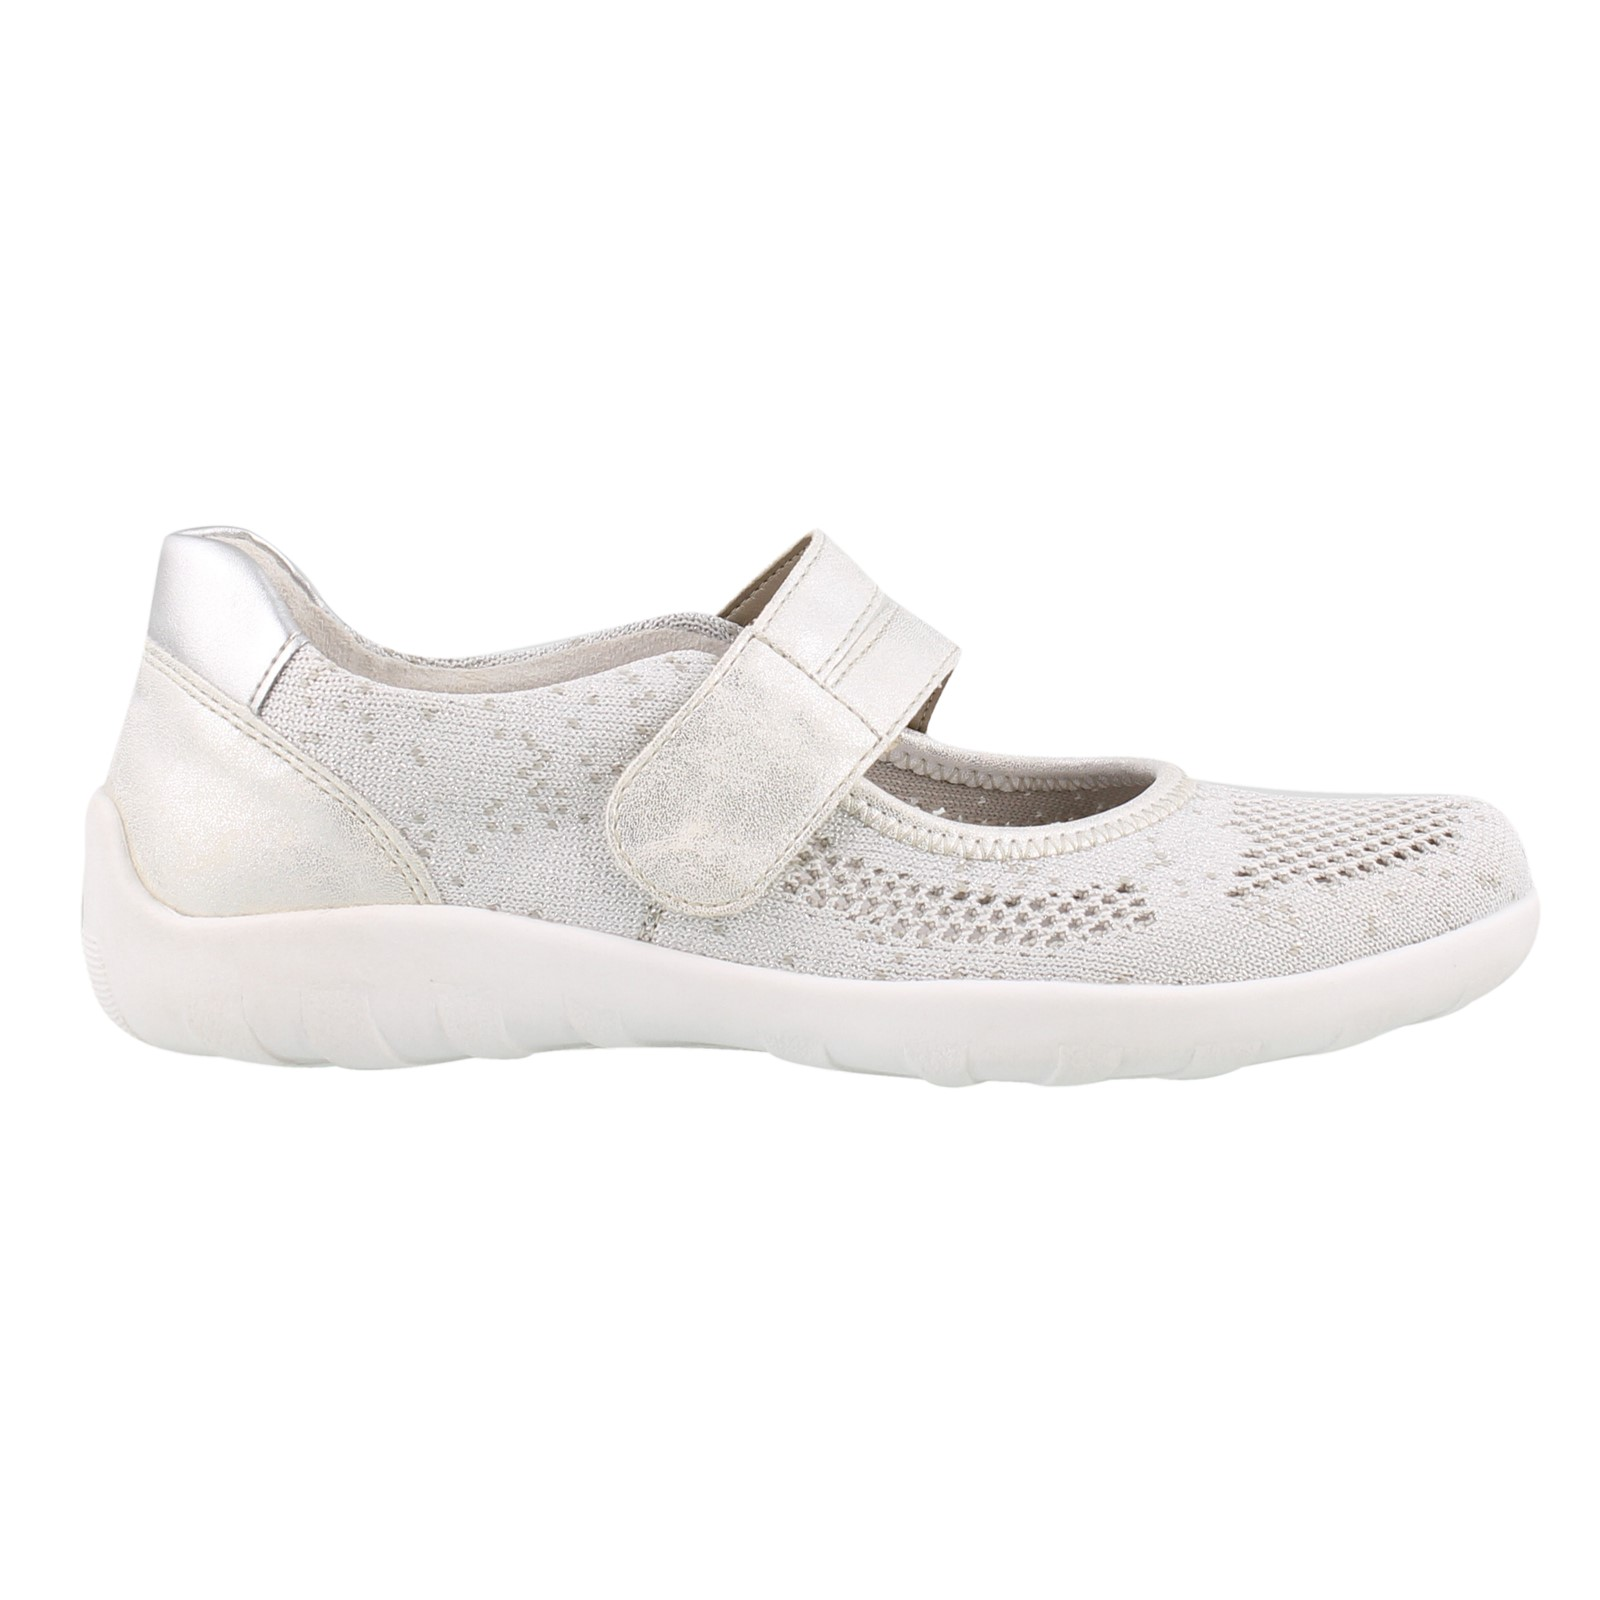 Women's Remonte, R3506 Slip on Shoes